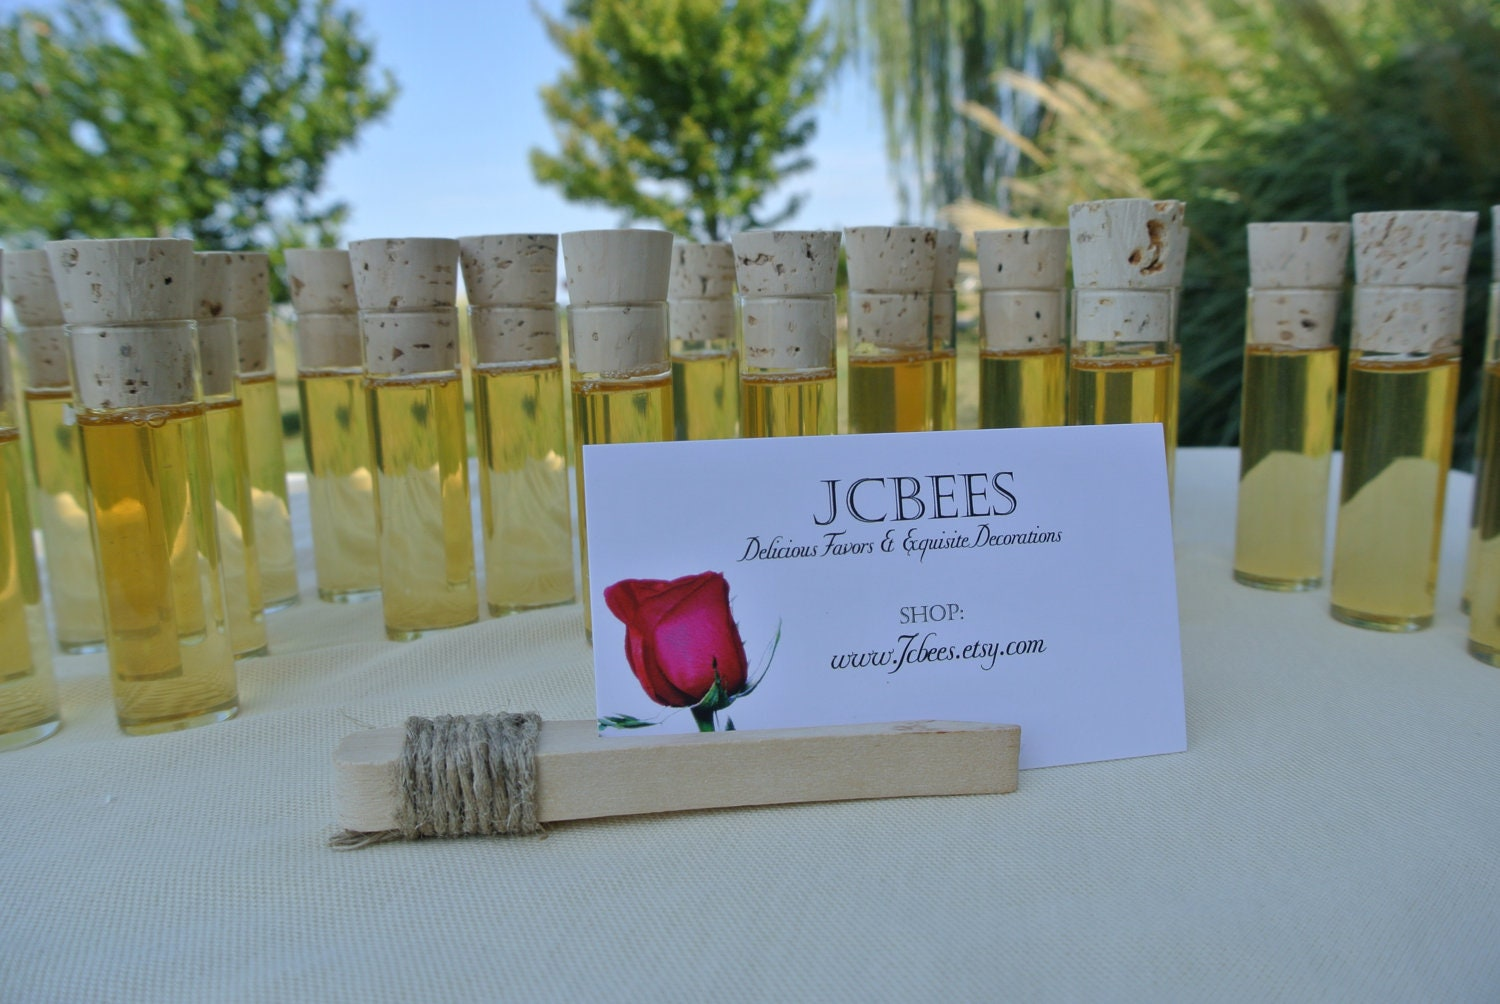 Bridal shower decor table setting place card holder by jcbees for Place settings name card holders